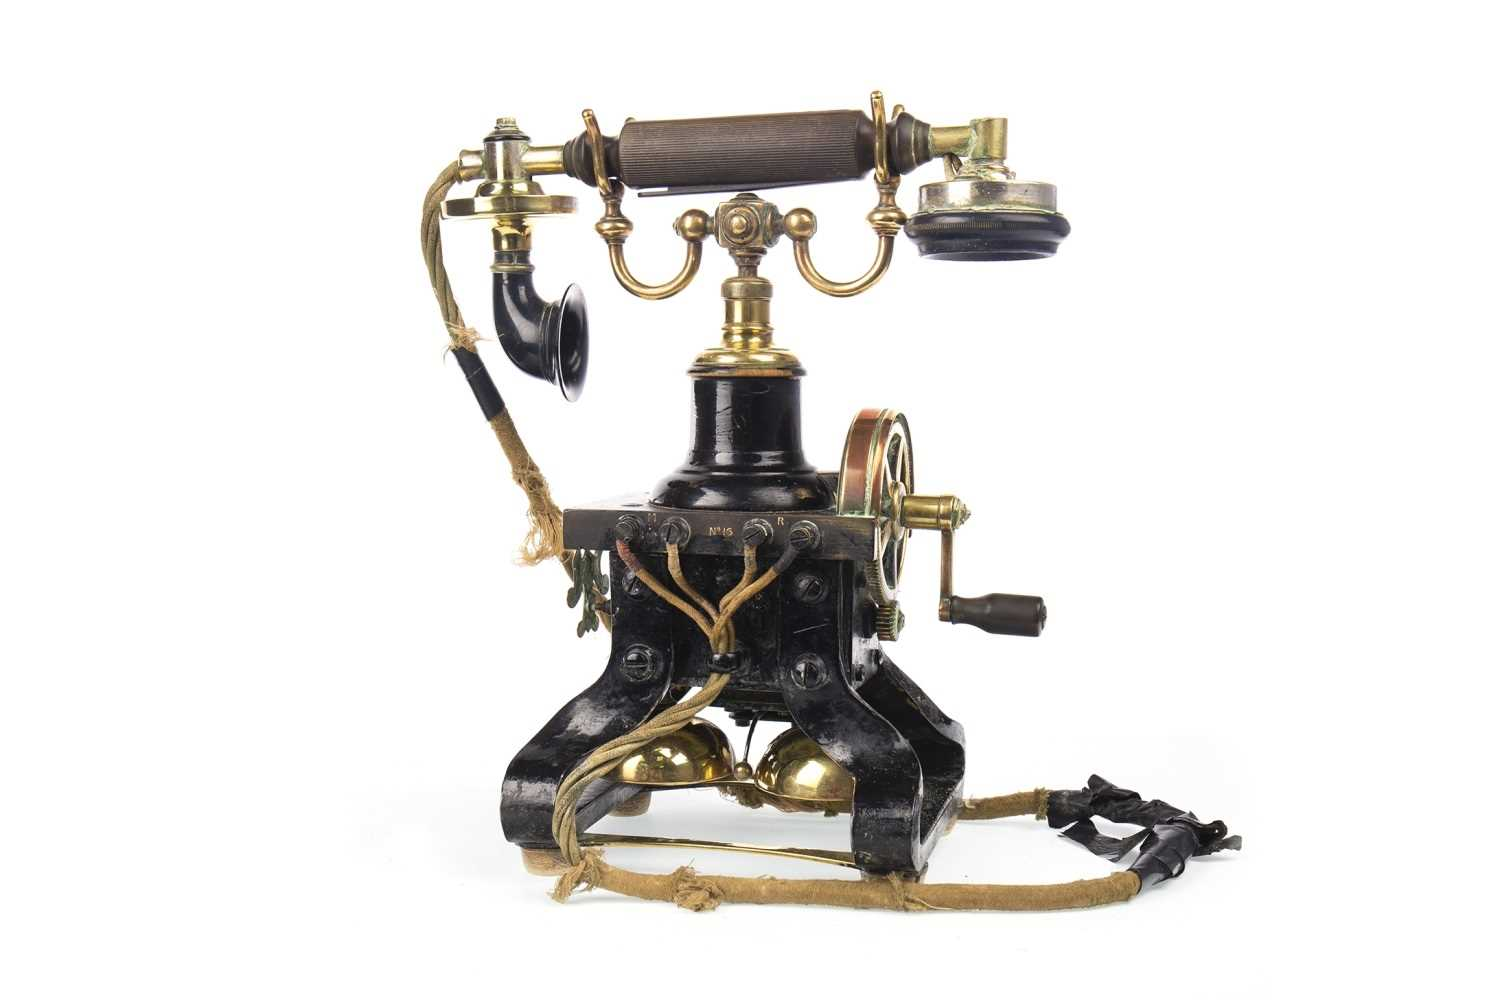 Lot 1524 - A RARE L.M. ERICSSON NO.16 SKELETAL PHONE